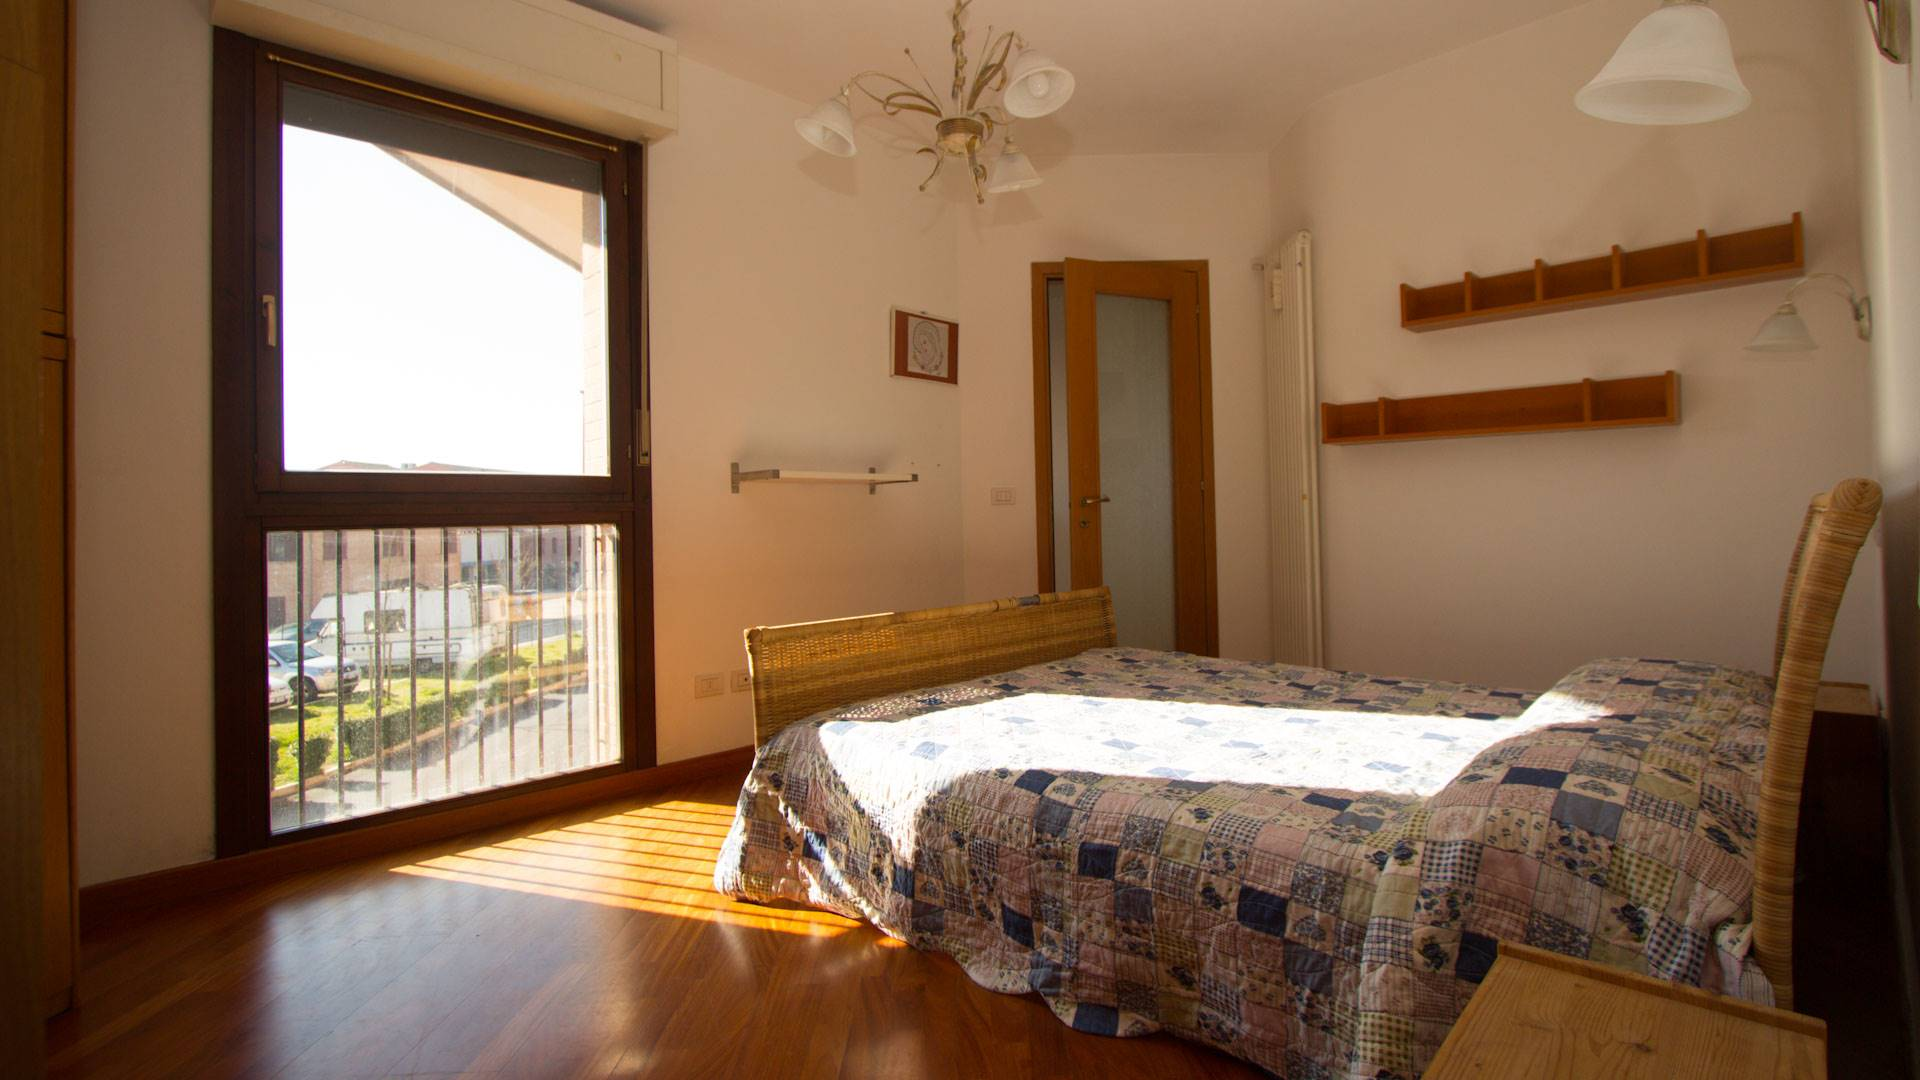 PIAN DELLE FORNACI, SIENA, Apartment for sale of 75 Sq. mt., Good condition, Heating Individual heating system, Energetic class: D, Epi: 70,8 kwh/m2 year, placed at Ground on 3, composed by: 3 Rooms,